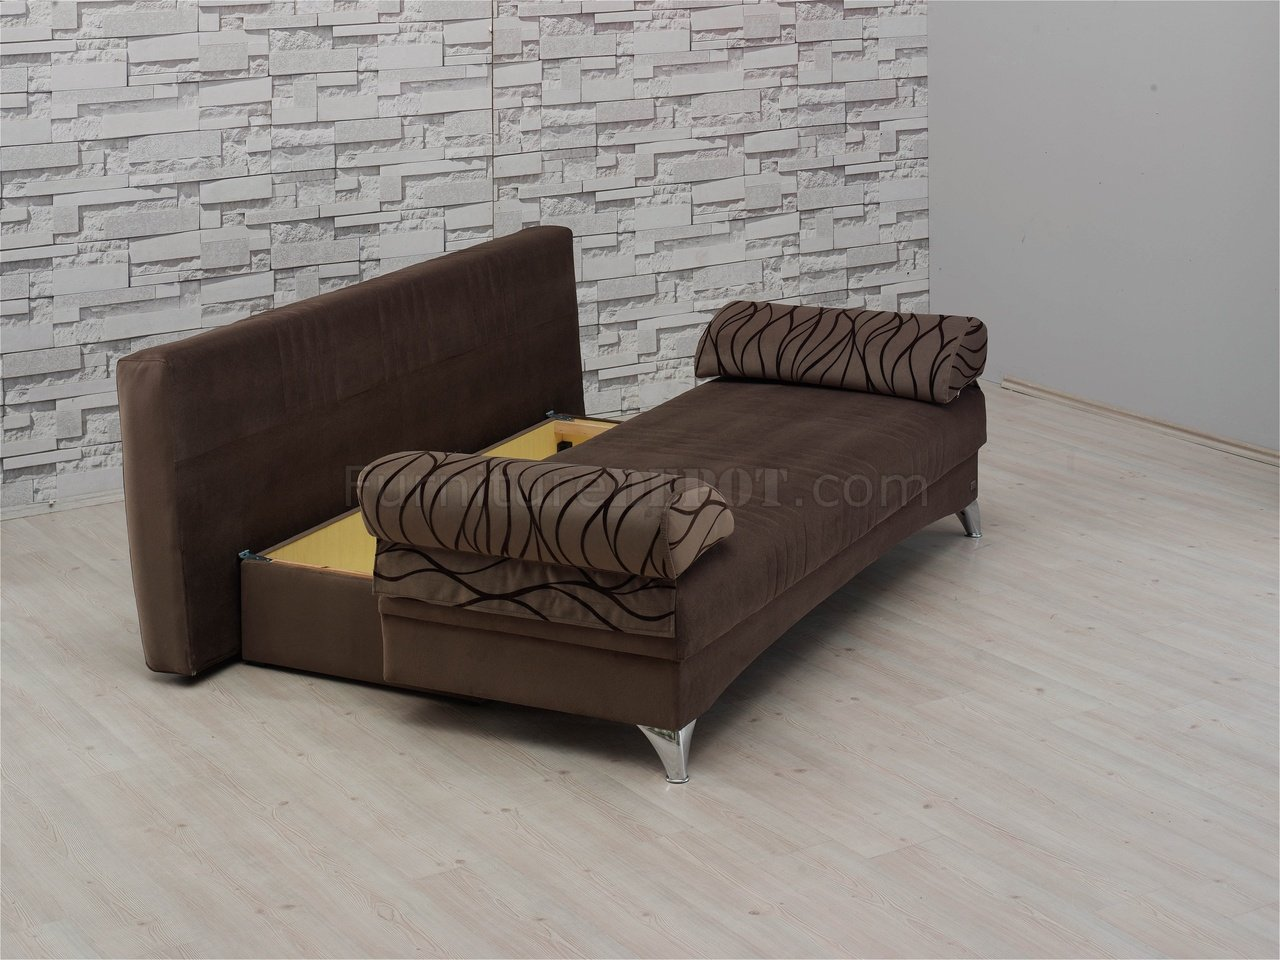 dark brown microfiber sofa lazy boy recliner daisy bed convertible in by empire